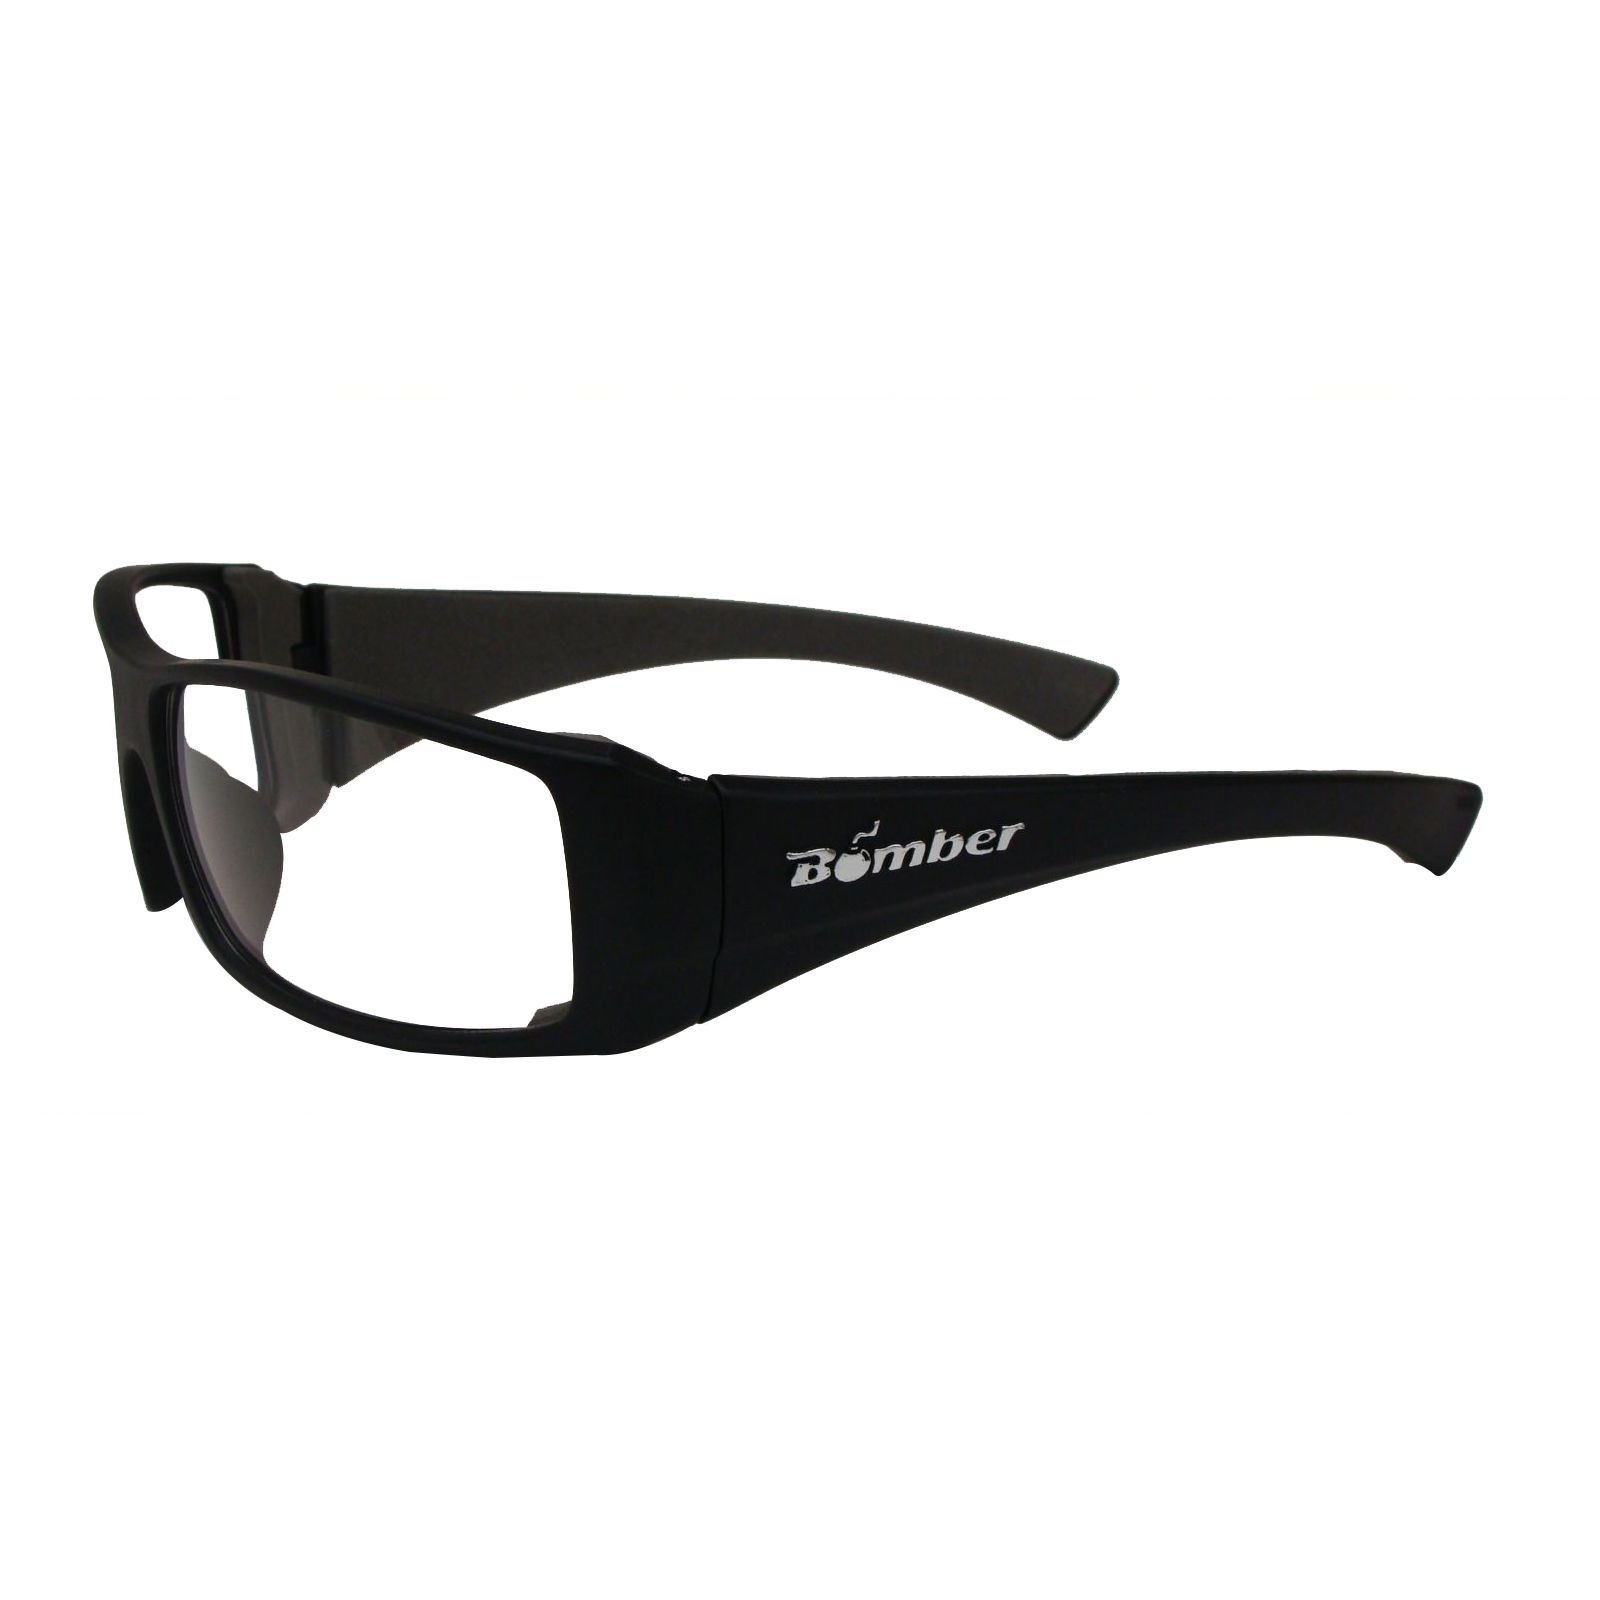 Bomber N101-C -  # Nitro-Bomb Safety Glasses, Matte Black Frame / Clear Polycarbonate Lens